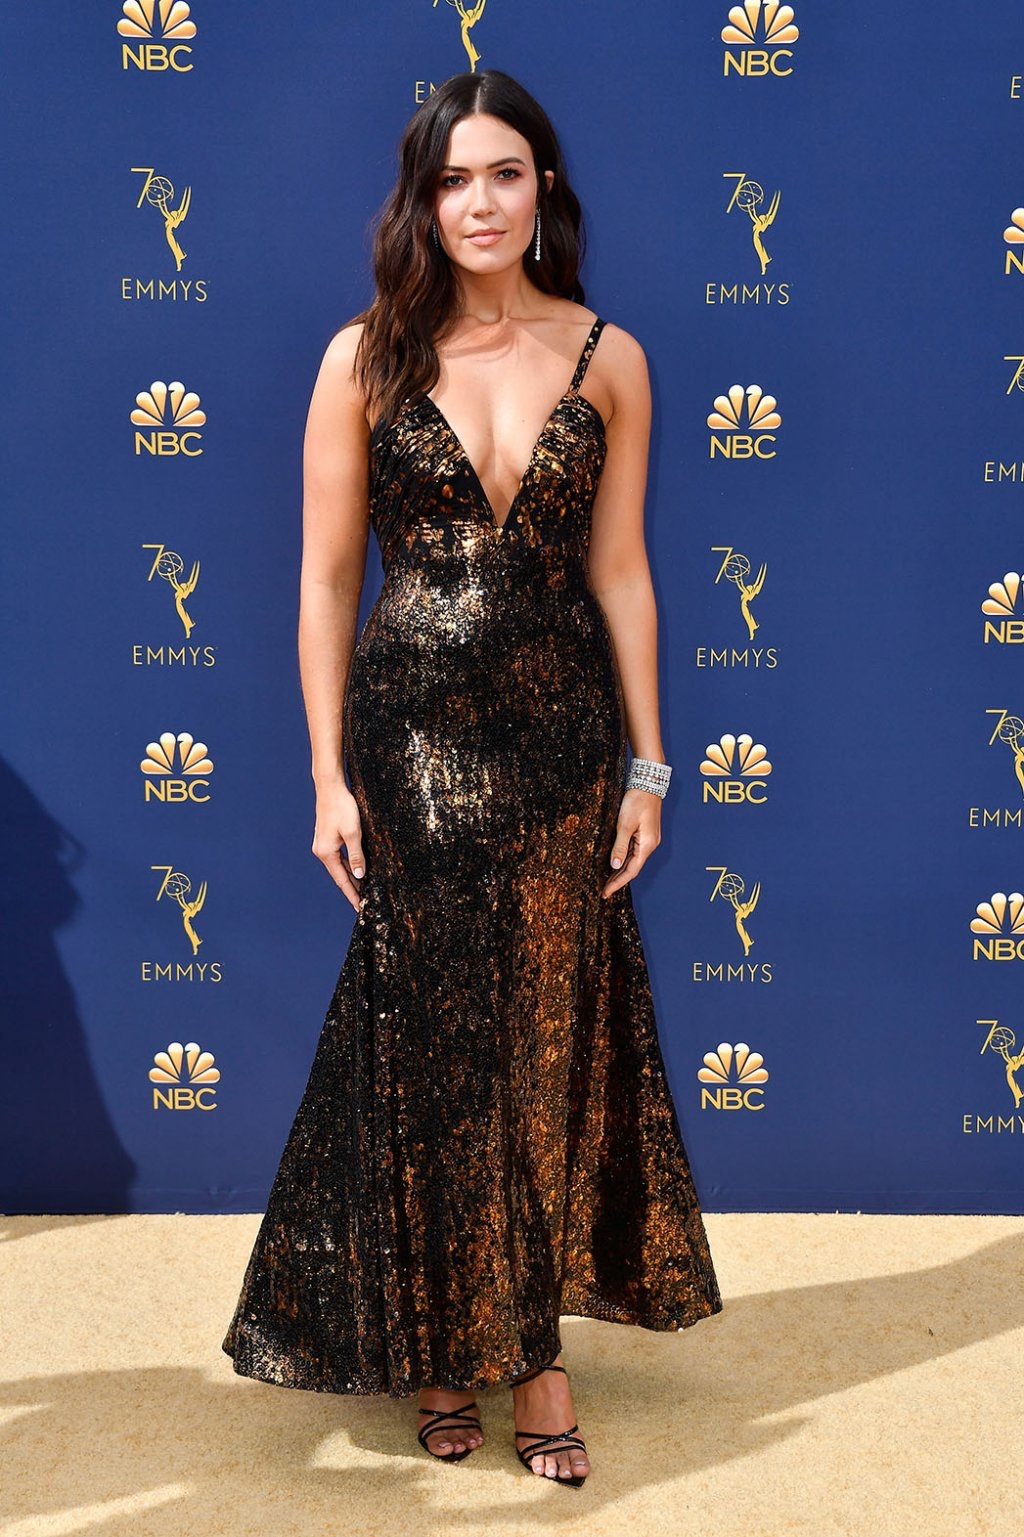 Mandy Moore in Rodarte, 70th Annual Primetime Emmy Awards, Betty White, Emmys 2018, Fashion, Featured, Glenn Weiss, Hannah Gadsby, highlights, Jav Svendsen, Online Exclusive, Style, The Marvellous Mrs. Maisel, top moments, We solved it, Diversity